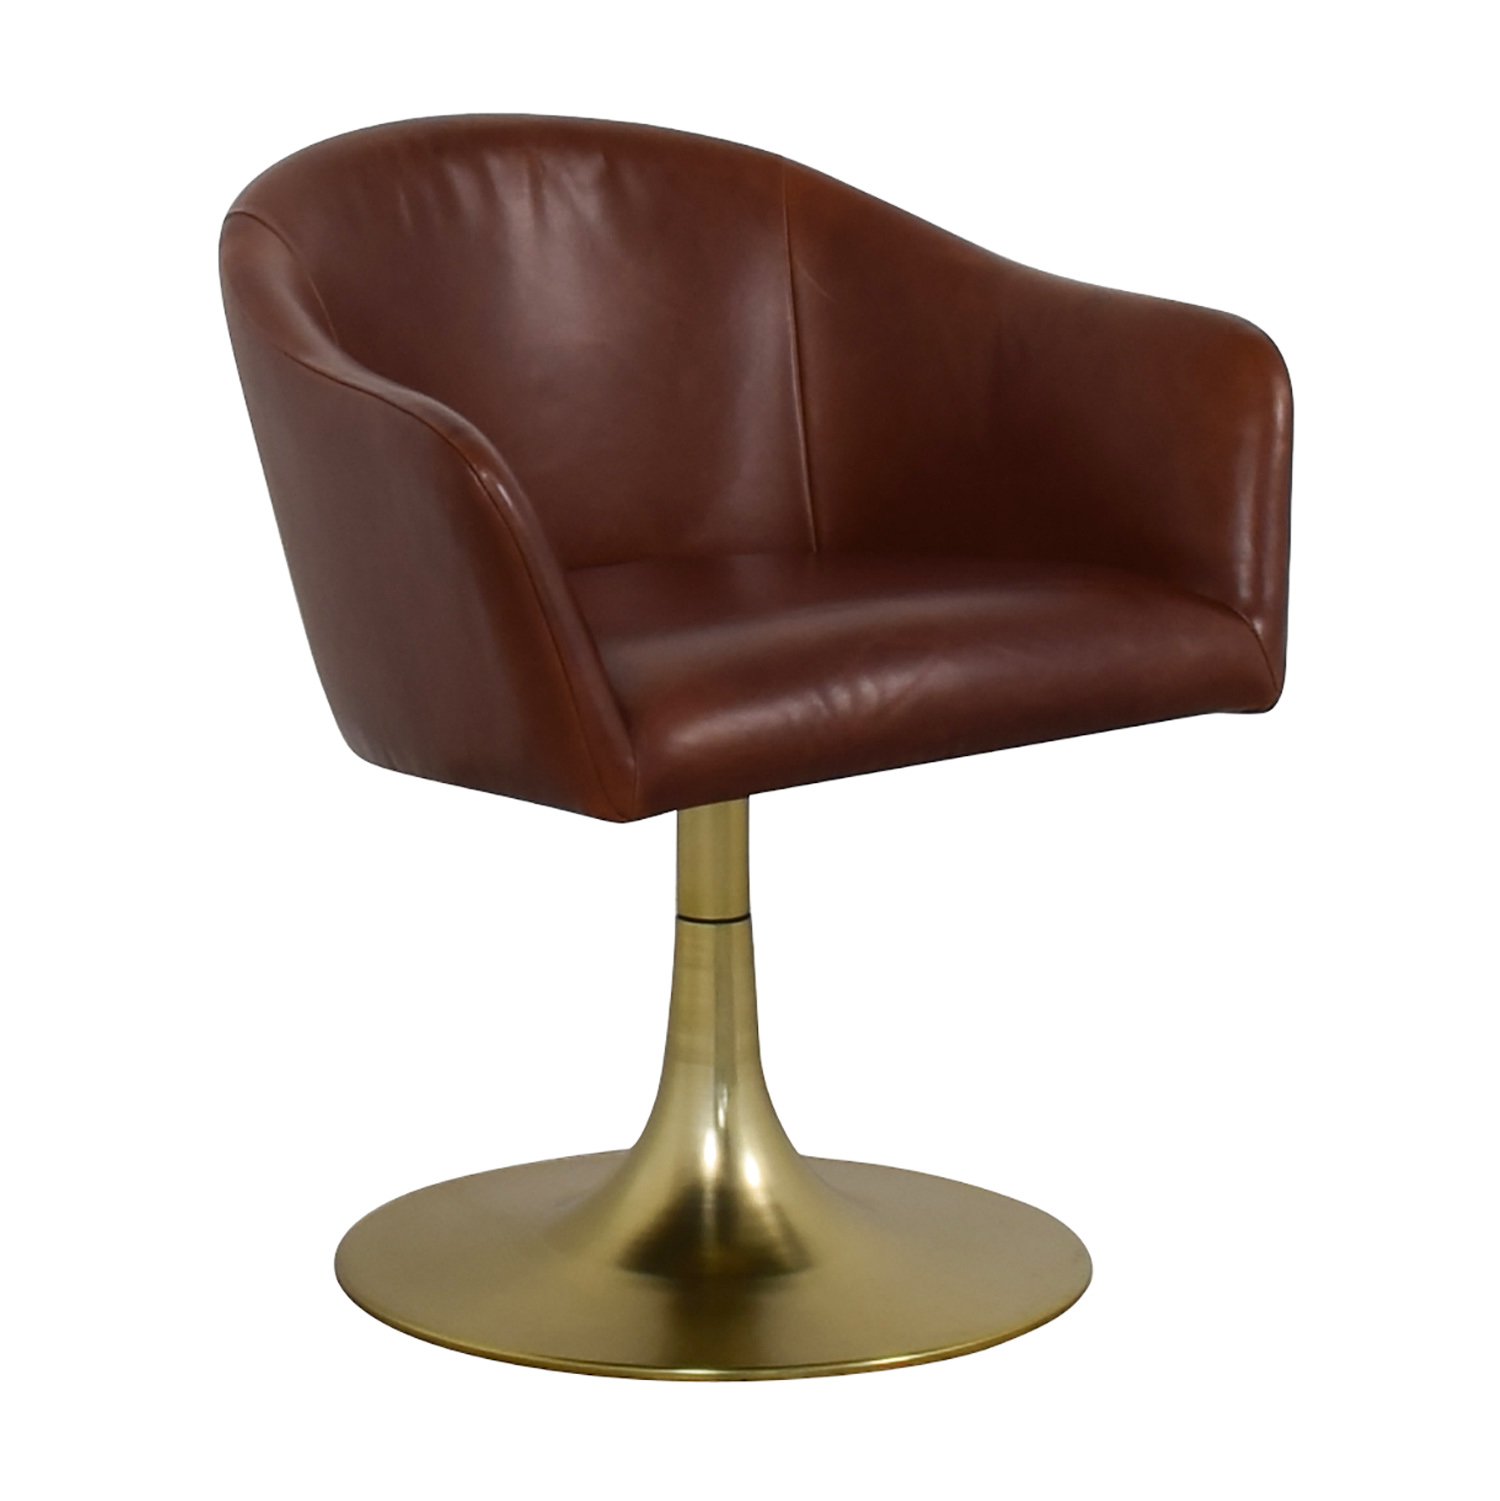 West Elm West Elm Bond Swivel Office Chair Leather Metal Base for sale